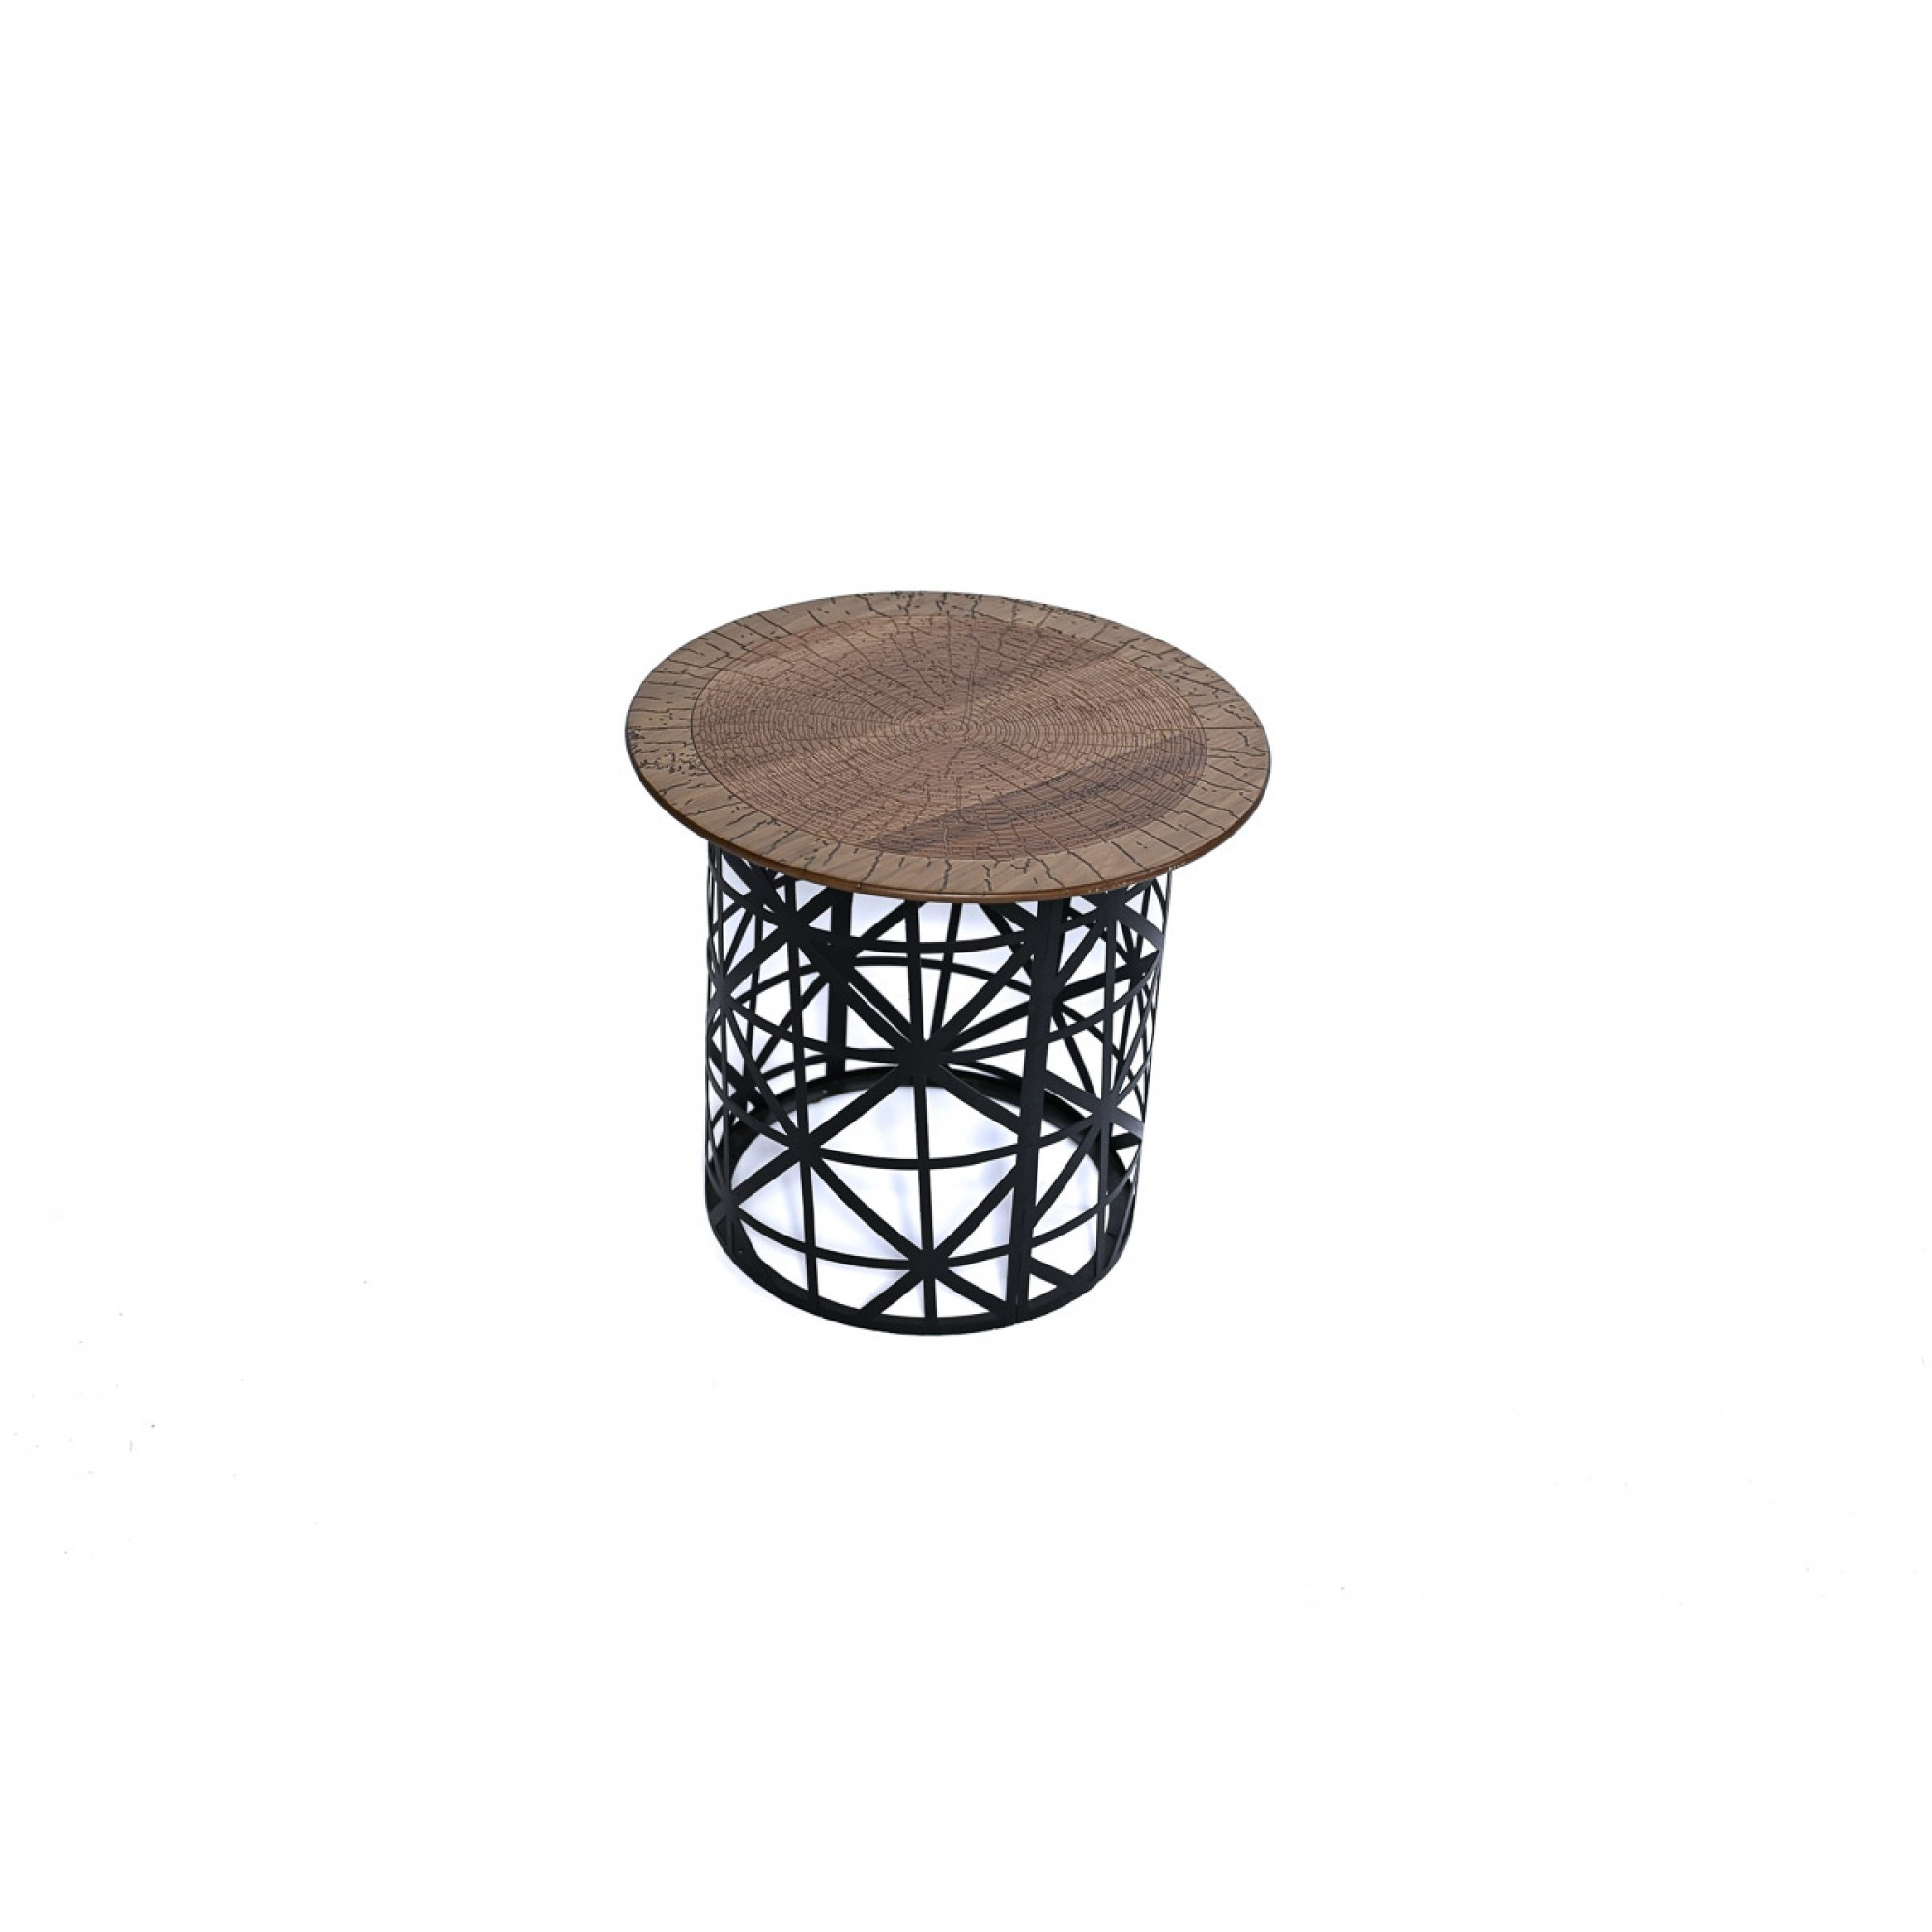 Side table with metal structure and wooden countertop - GEOMETRI